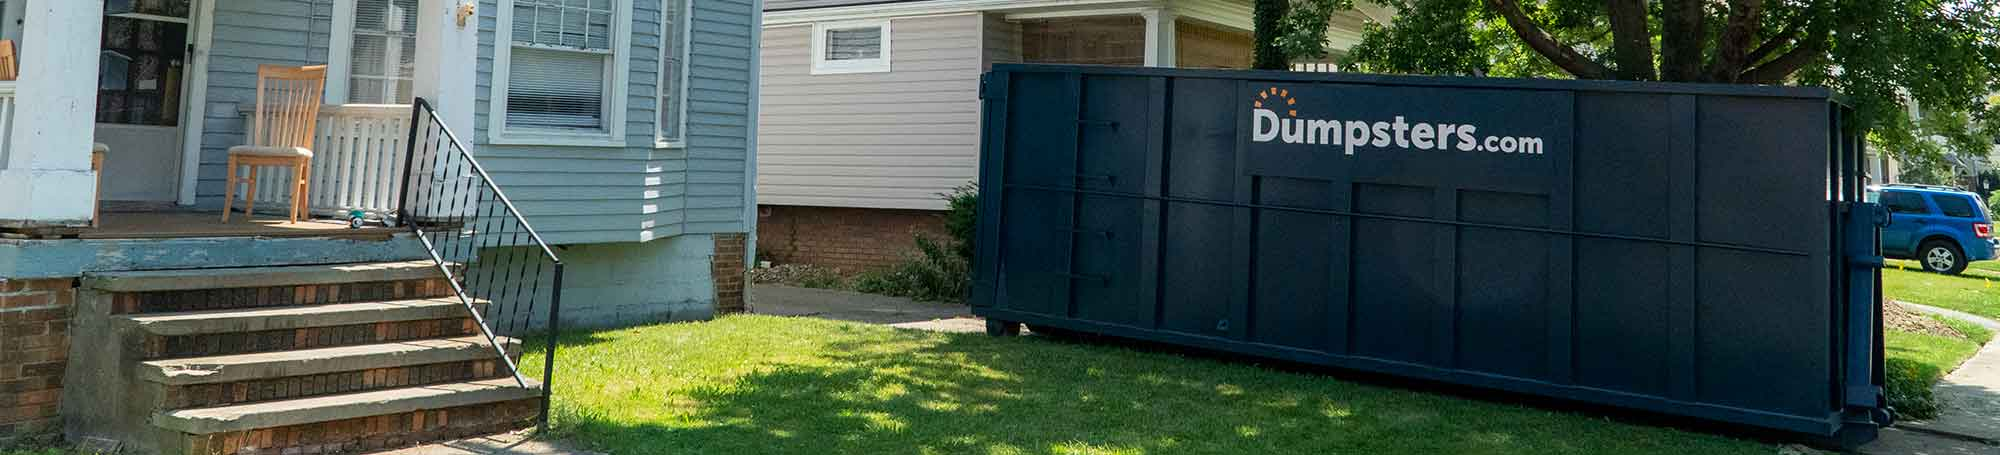 Rent A Dumpster In Oklahoma City Ok Dumpsters Com